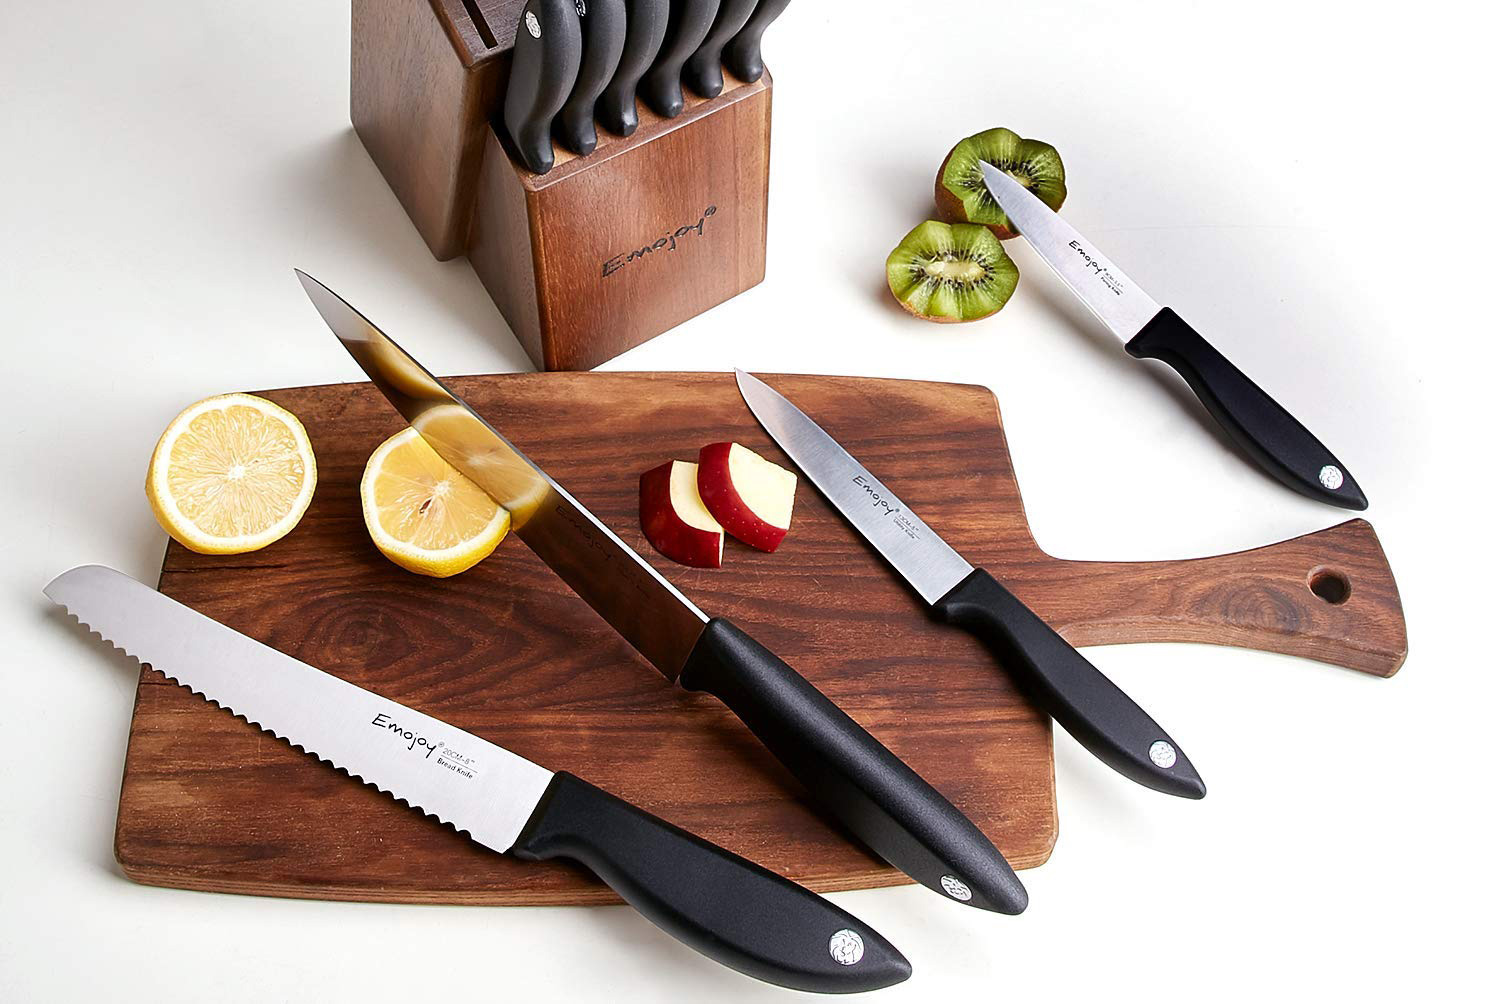 Amazon Sale Gets You A 15 Piece Stainless Steel Knife Set For 34 Instead Of 120 Bgr